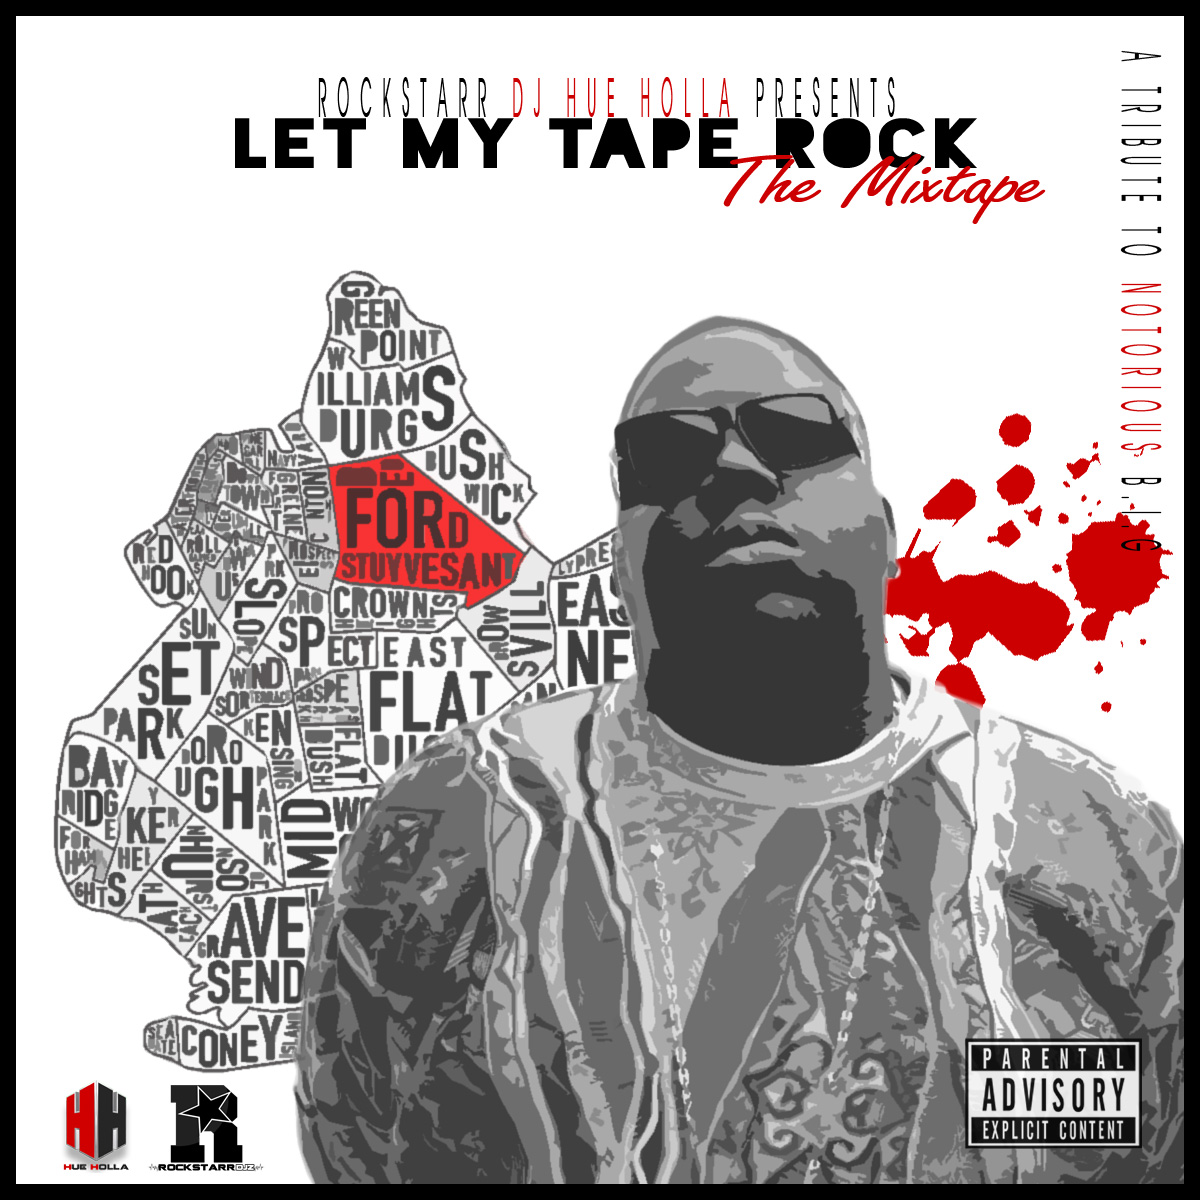 Let My Tape Rock - Mar 2014